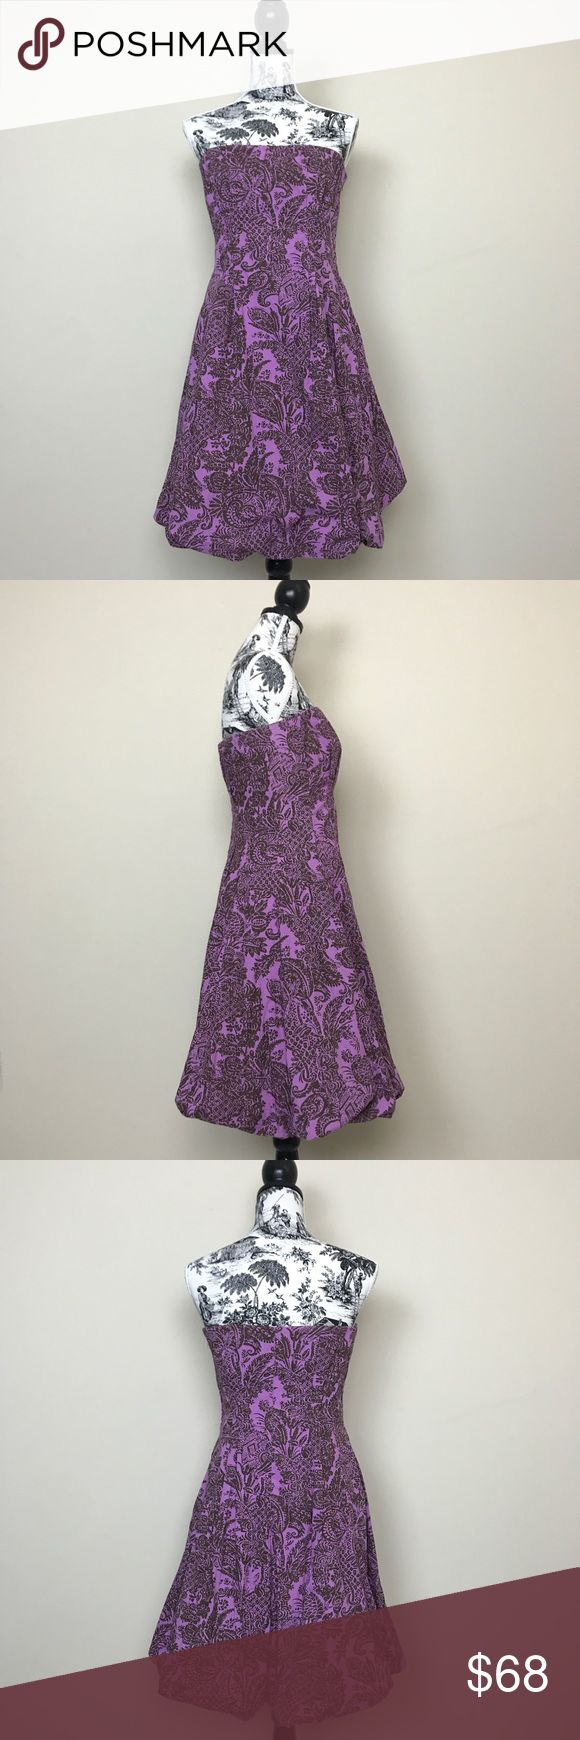 """Anthro Plenty by Tracy Reese Baroque Print Dress Anthropologie Plenty by Tracy Reese strapless baroque print dress. Elastic along the top of the dress and also has built in bustier for extra support. Bubble skirt hemming. Side concealed zipper. Fully lined. 100% cotton. Length 29"""" bust 14"""". Anthropologie Dresses Strapless"""